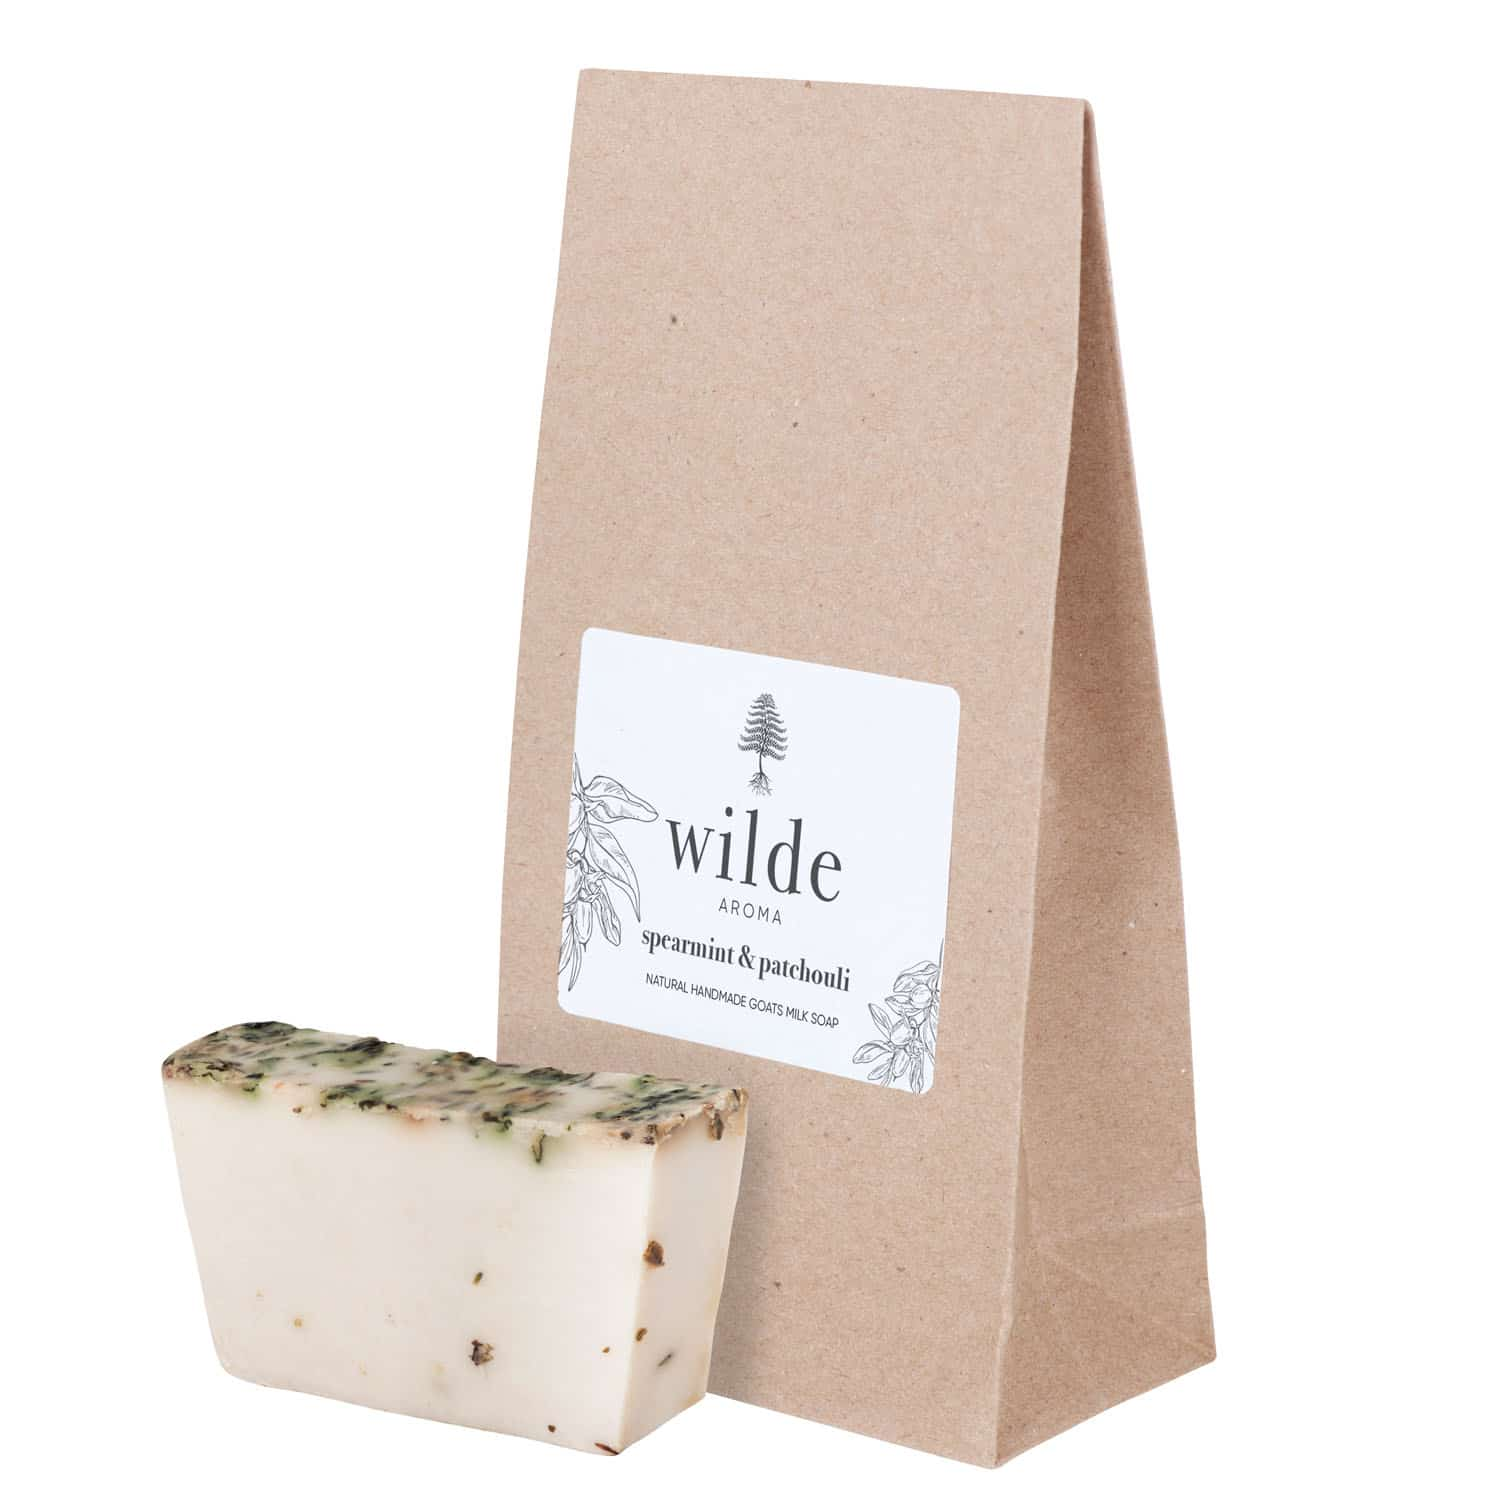 Goats Milk Soap – Spearmint And Patchouli By Wilde Aroma (Fitzroy)